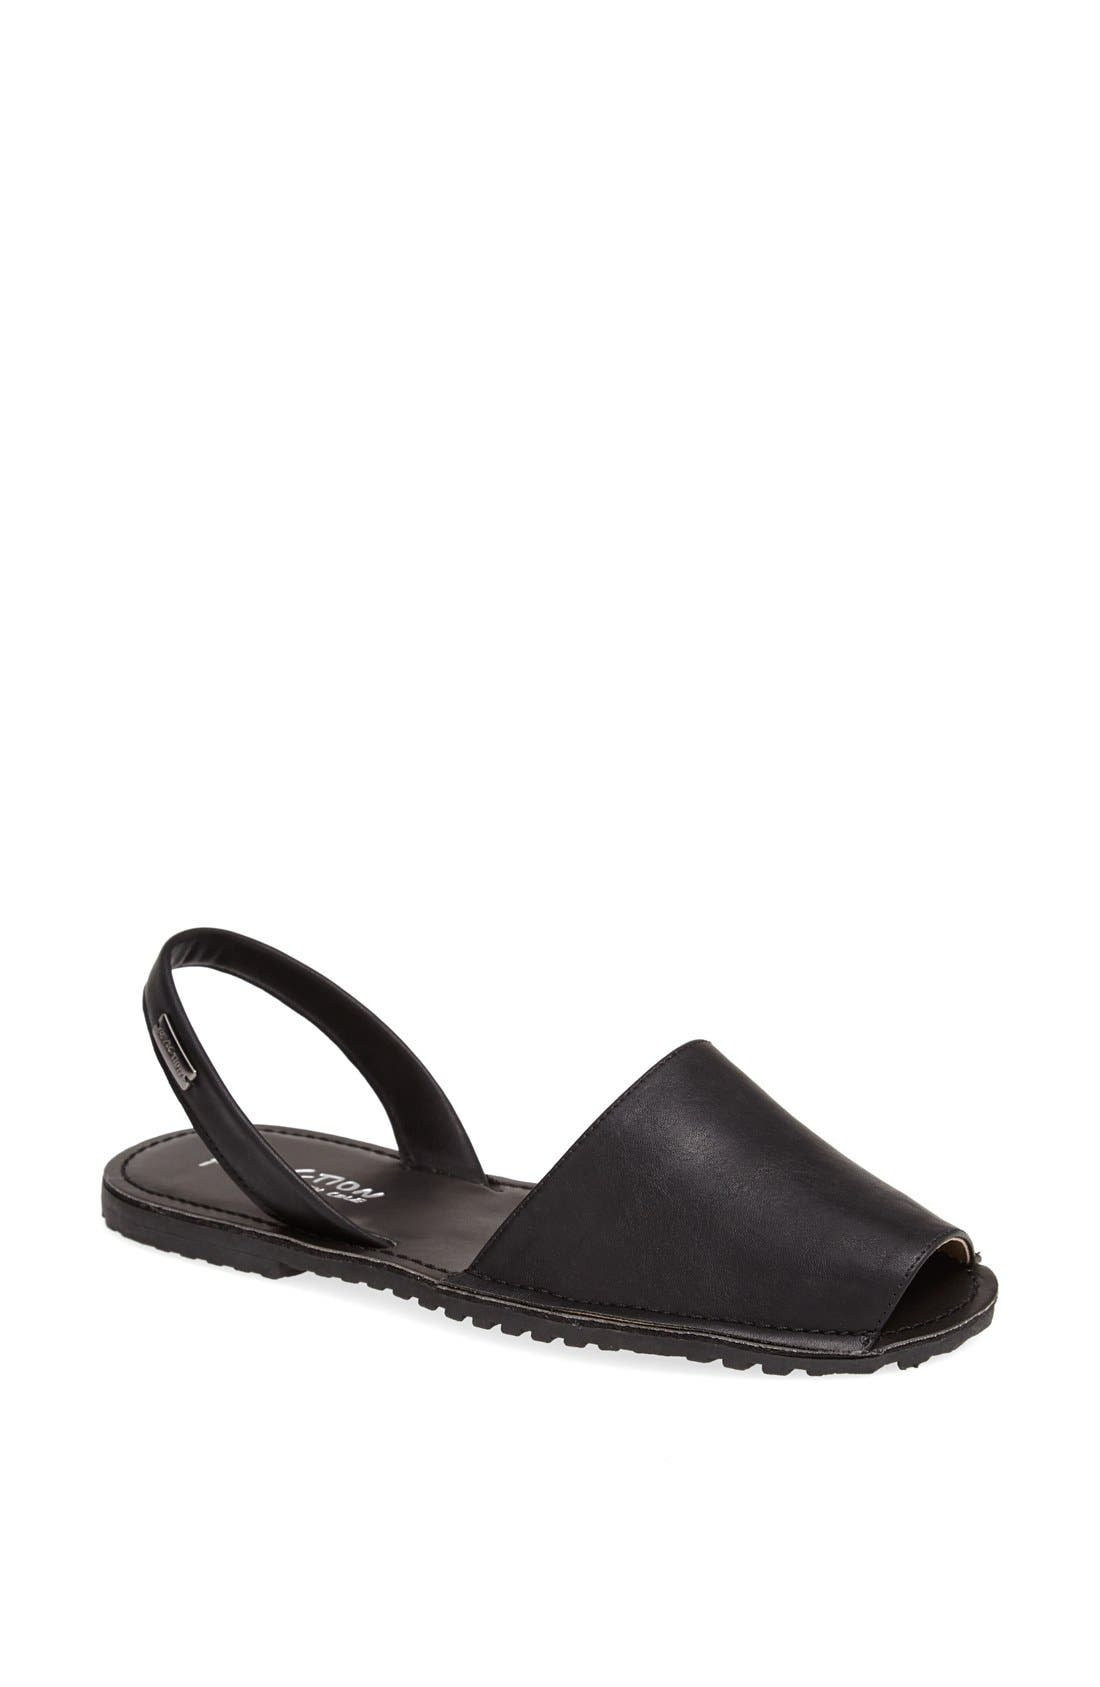 Main Image - Kenneth Cole Reaction 'Wipe Away' Slingback Sandal